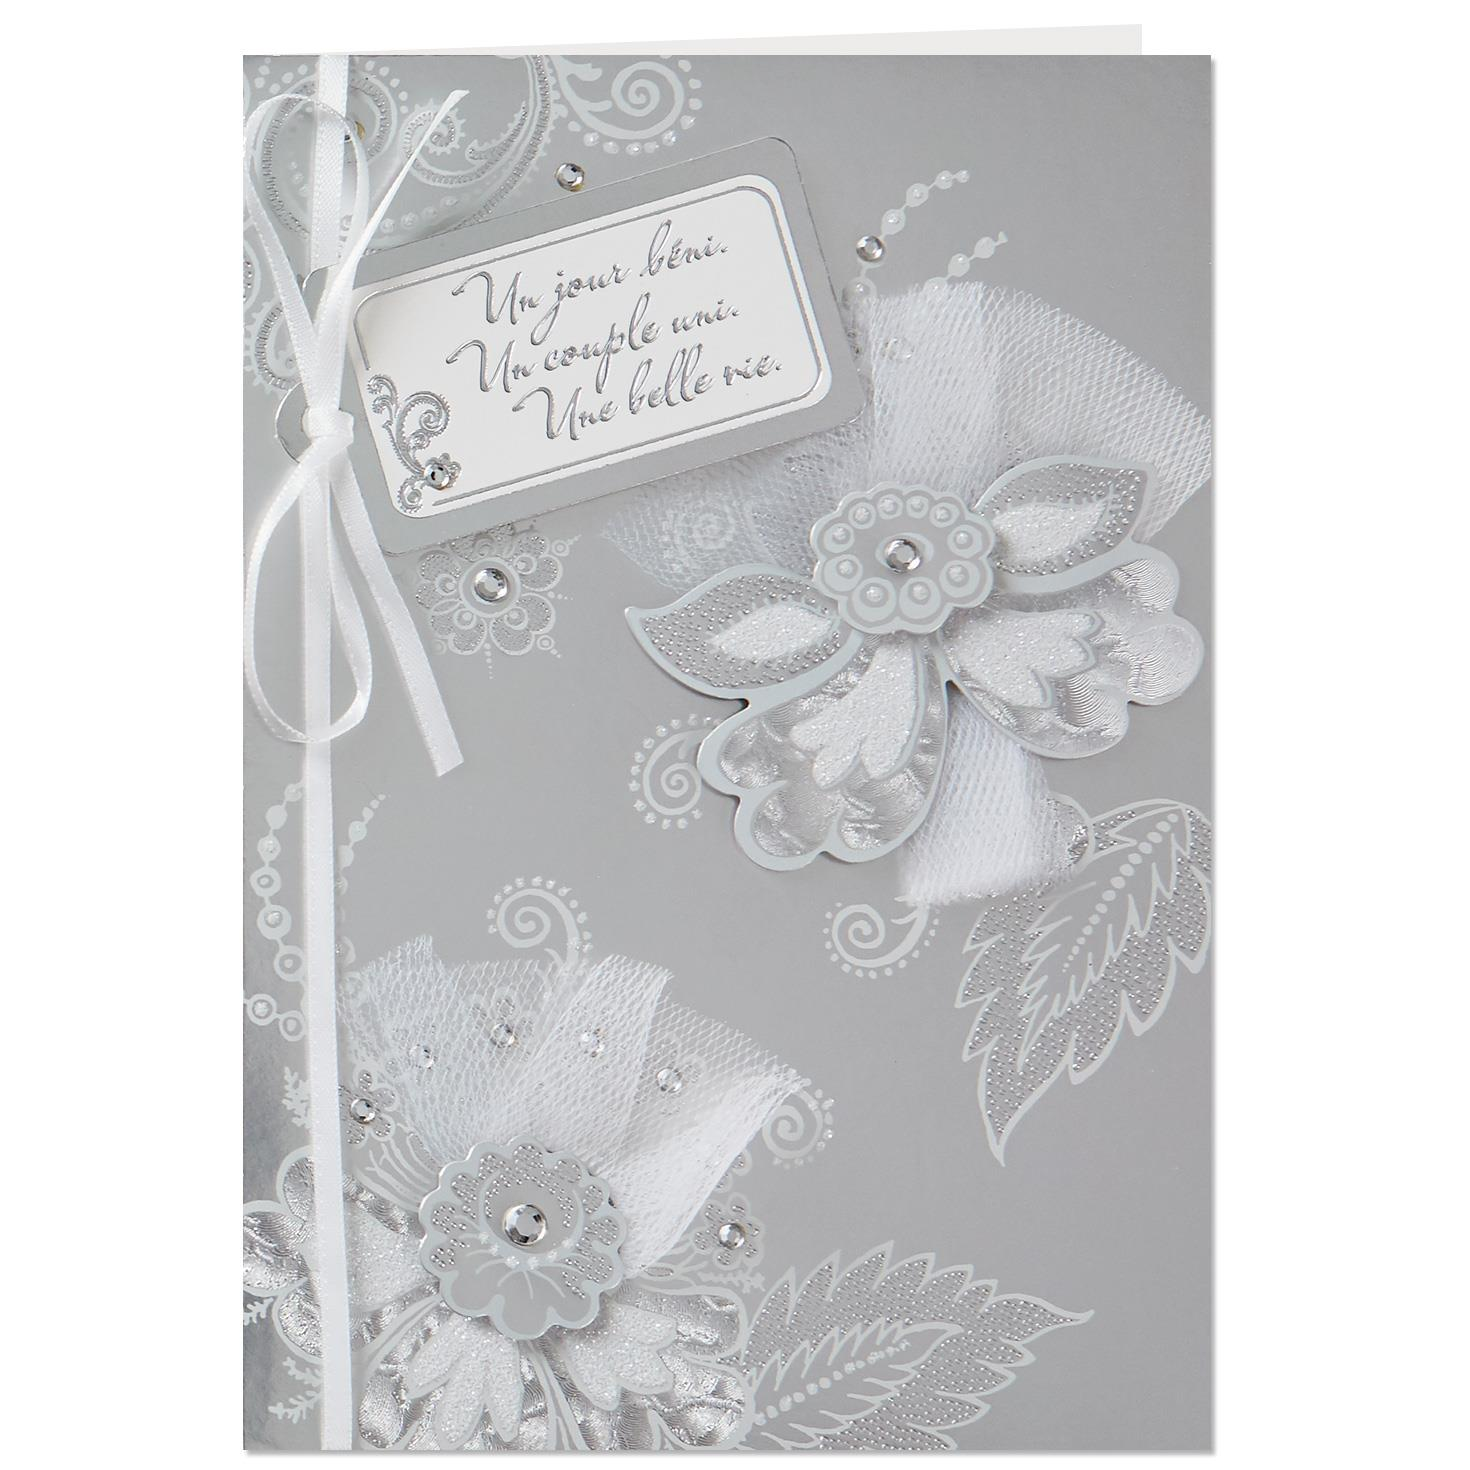 French Wedding Gifts: Flowers And Gift Tag French-Language Wedding Card